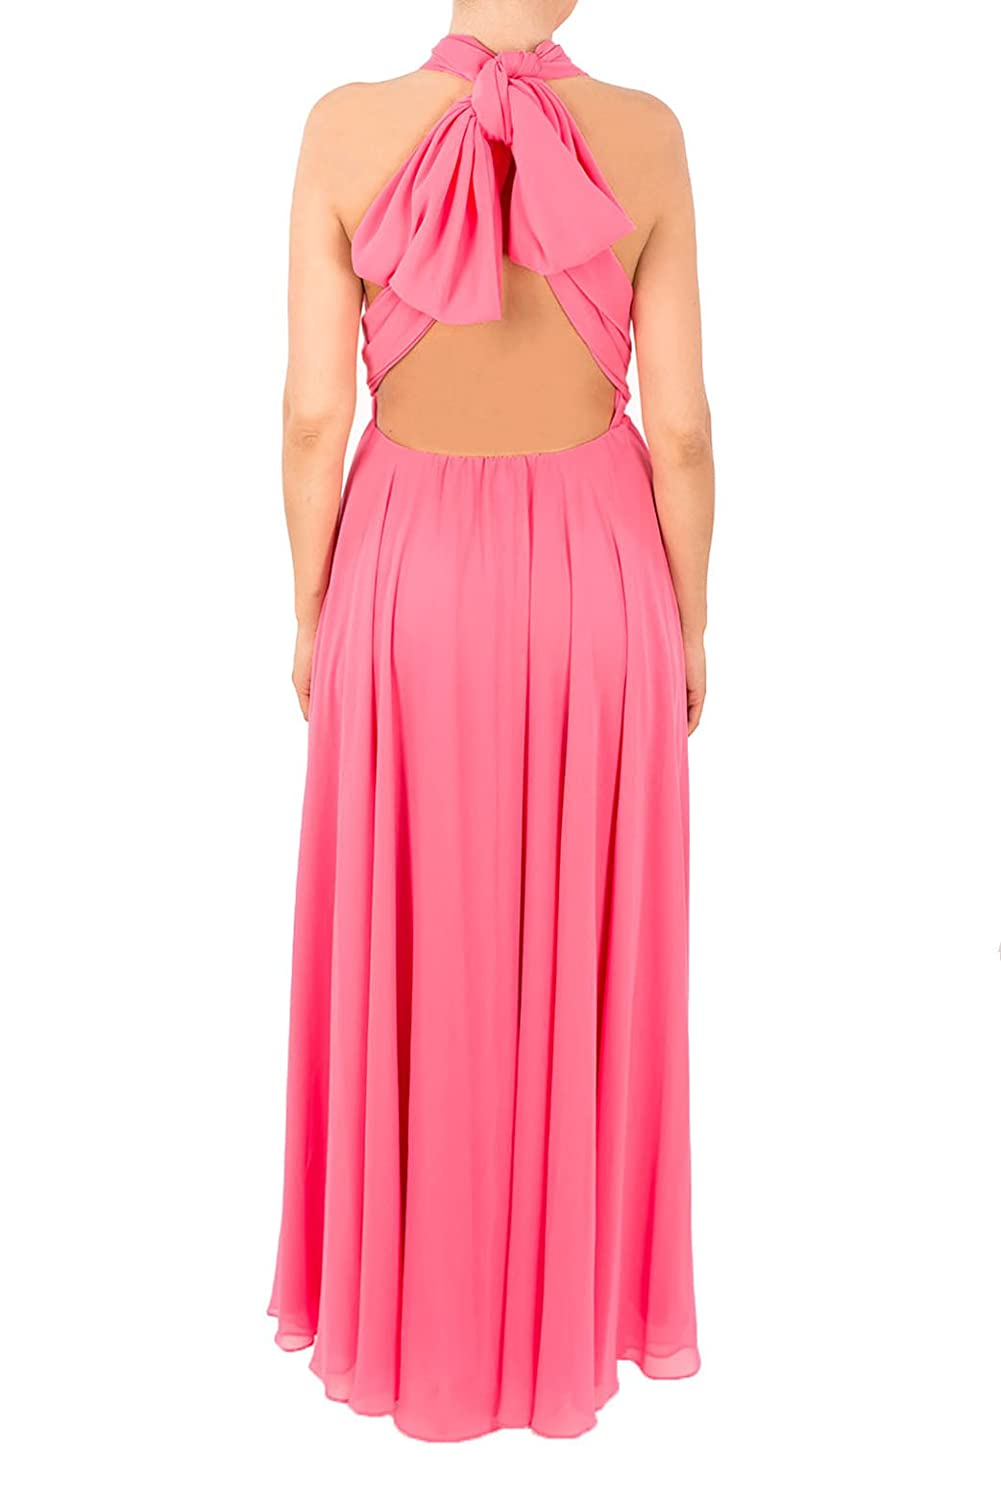 5cb3f1f69c0 Multiway Convertible Maxi Dress in Bright Pink Chiffon Material (12)   Amazon.co.uk  Clothing